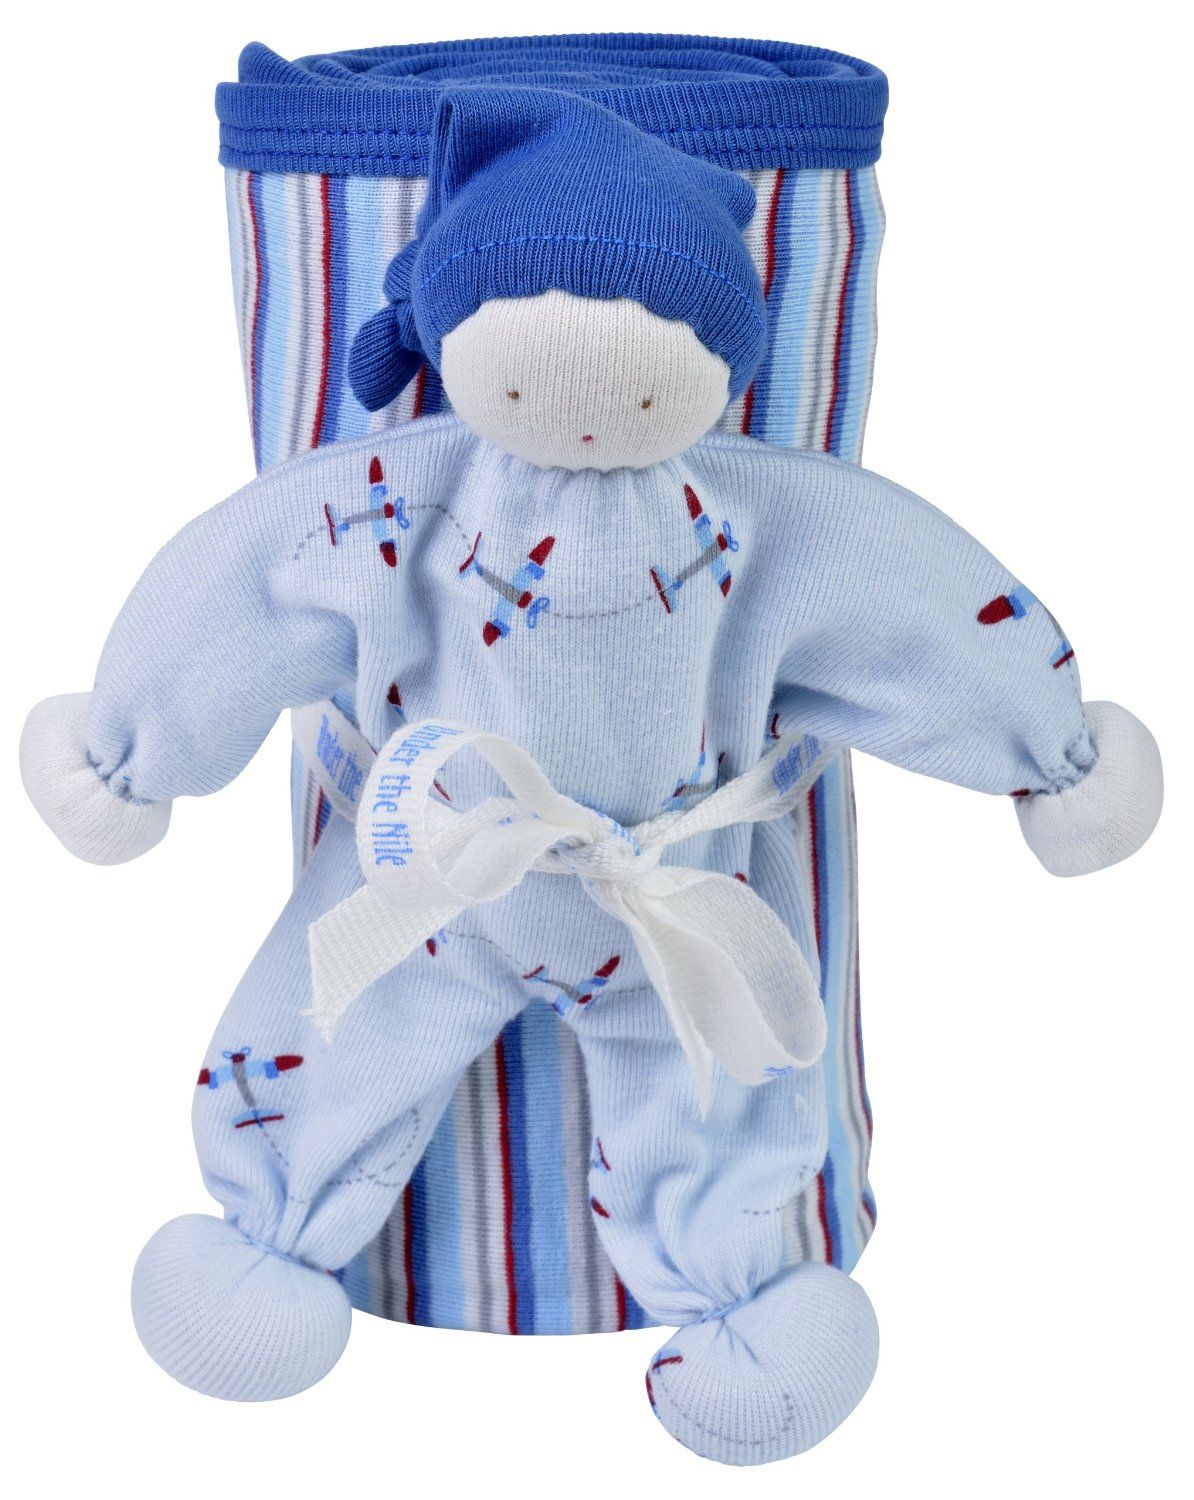 Under the Nile Up Up and Away Stroller Blanket Gift Set - City of Sleep $31.99